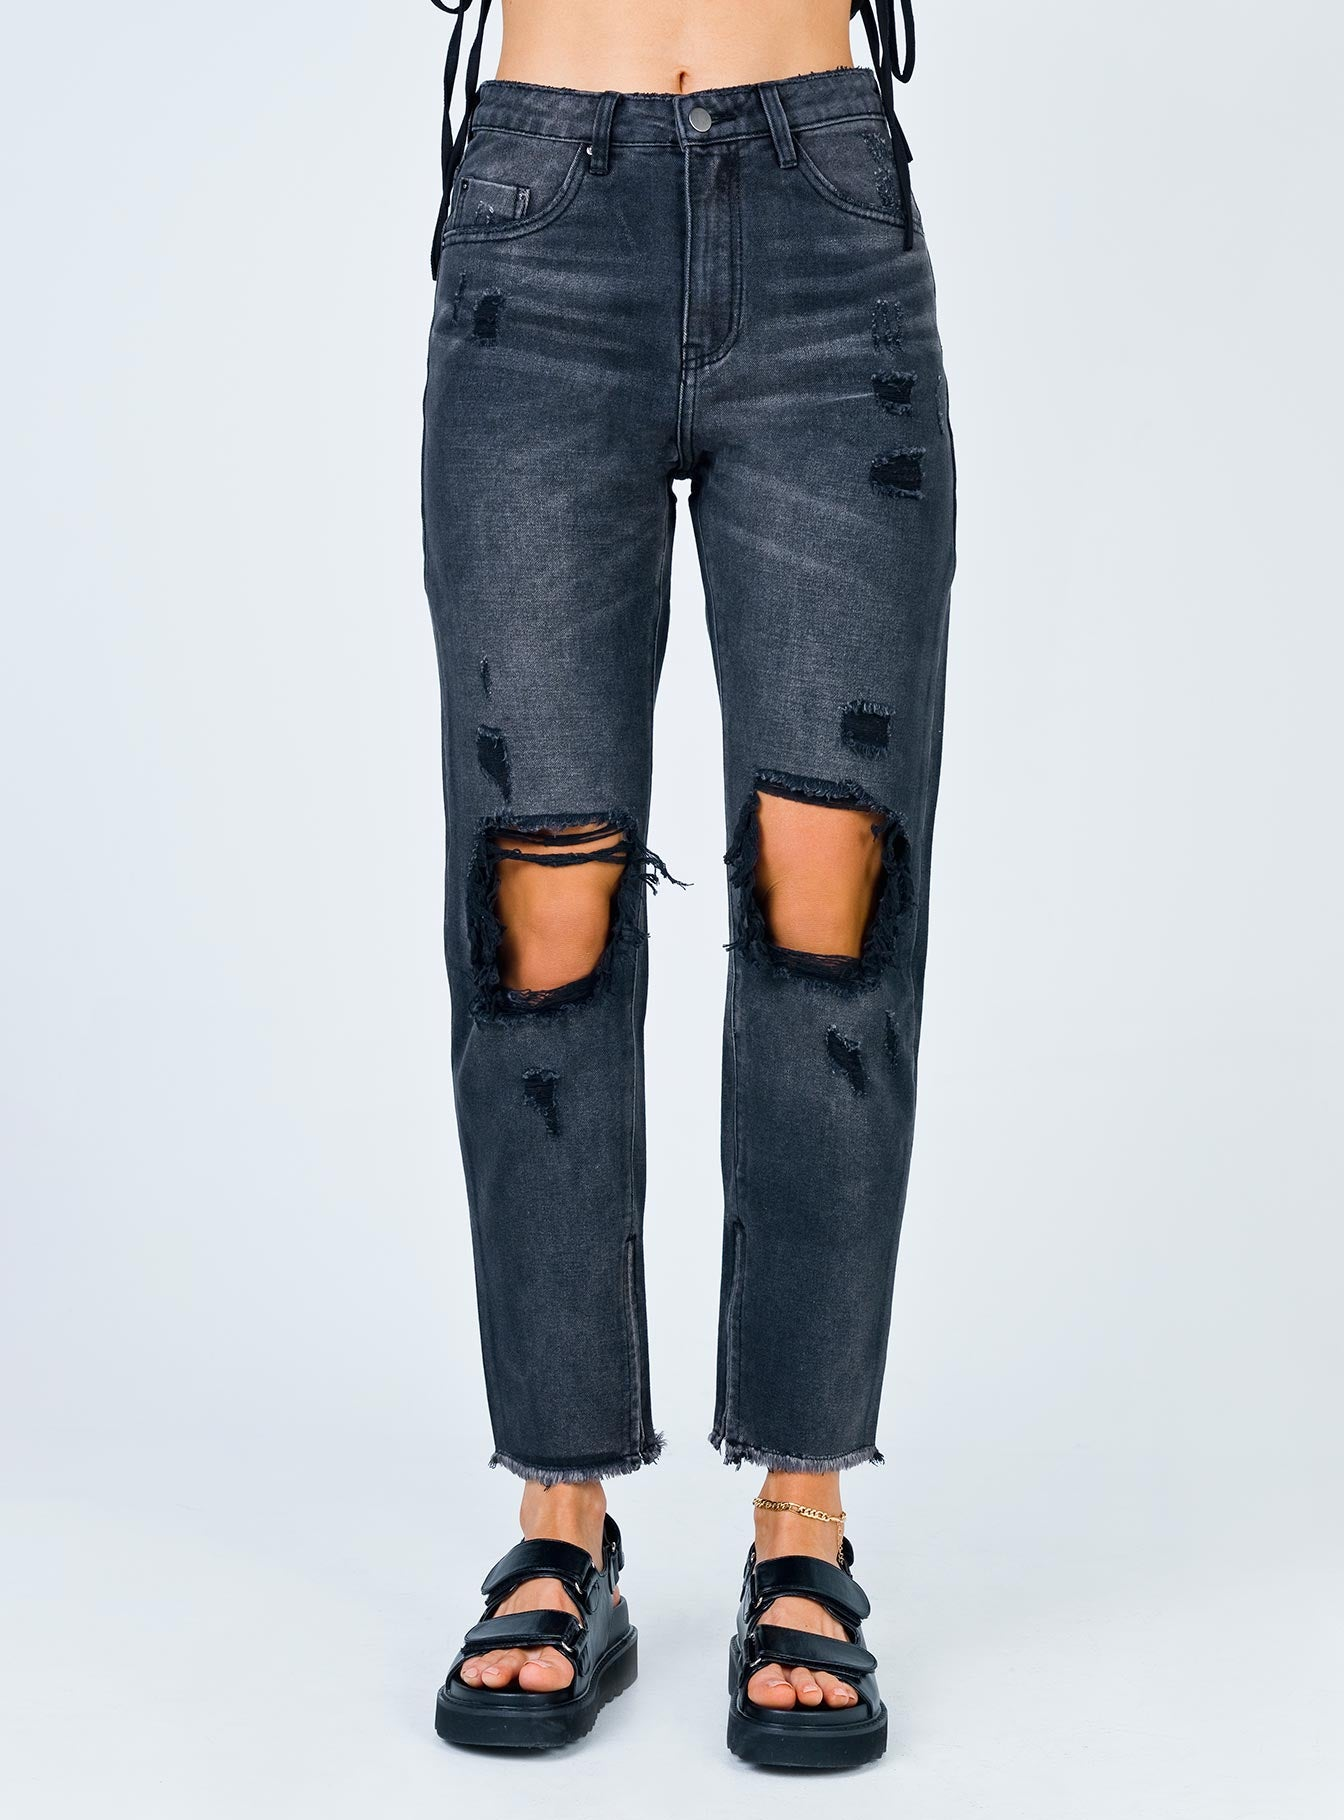 Erissa Knee Rip Jeans Washed Black Denim